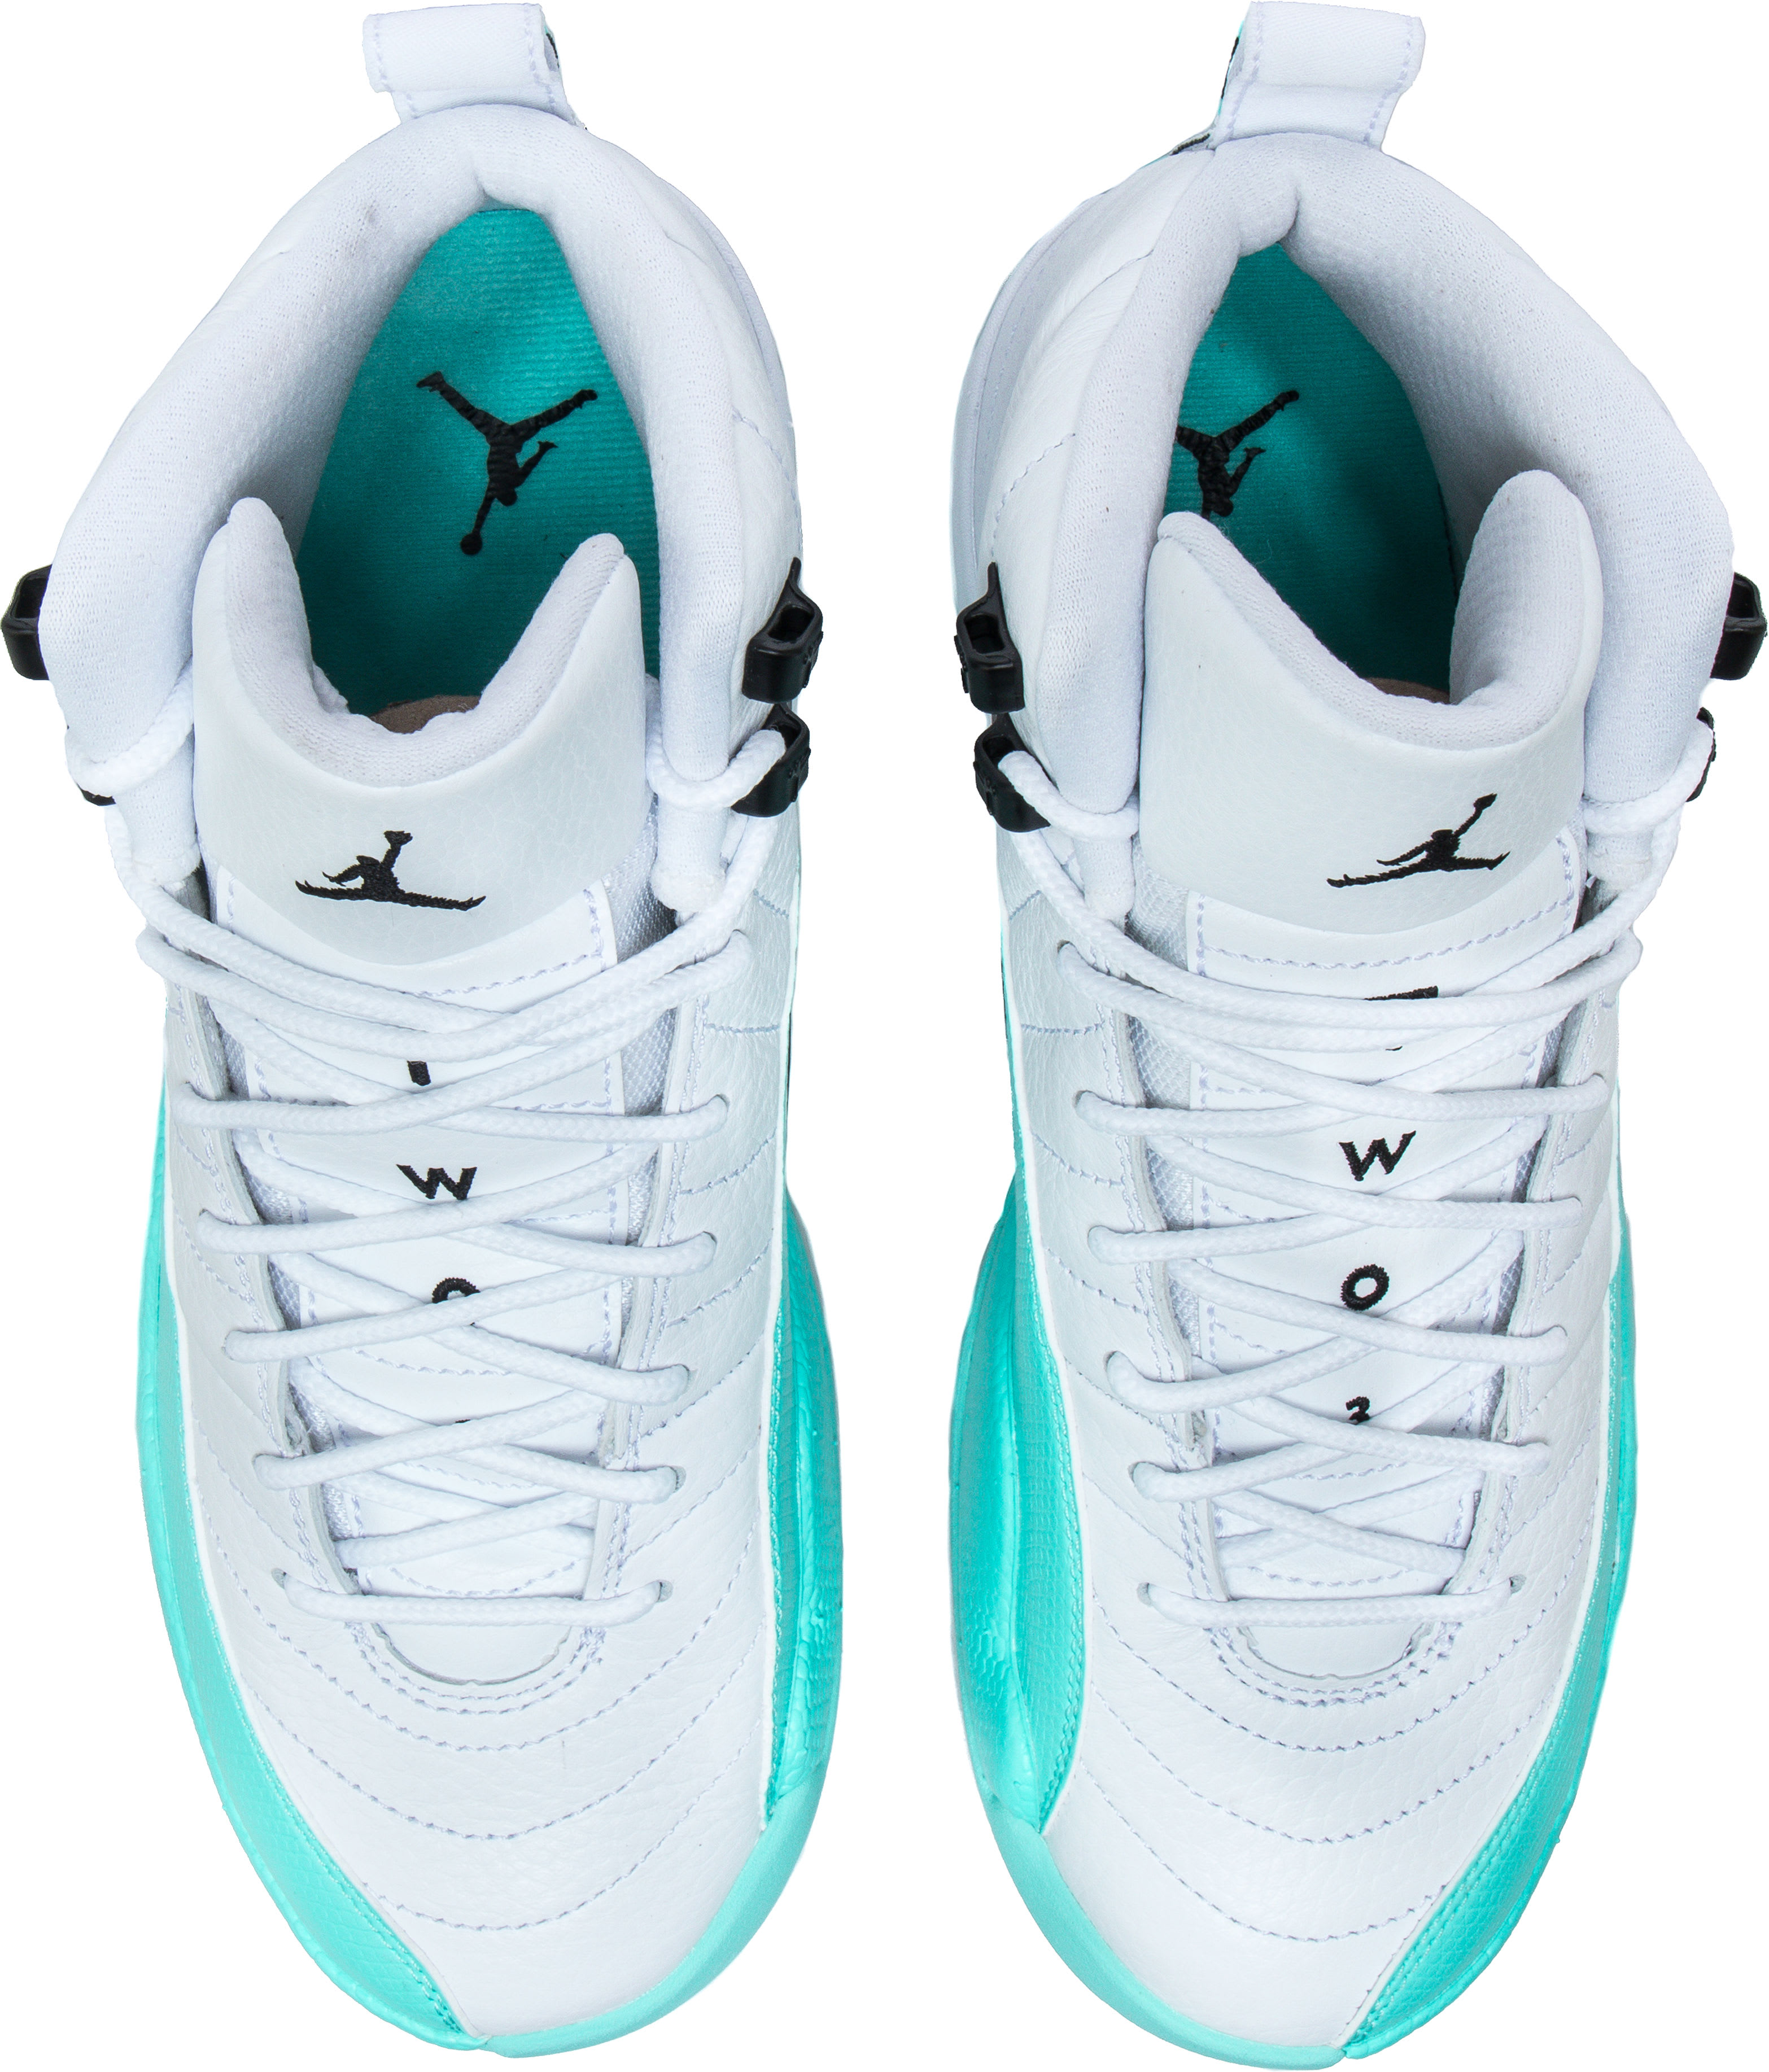 1e1f46ae8681ce ... wholesale image via shoe palace air jordan 12 xii retro gg white light  aqua black 510815